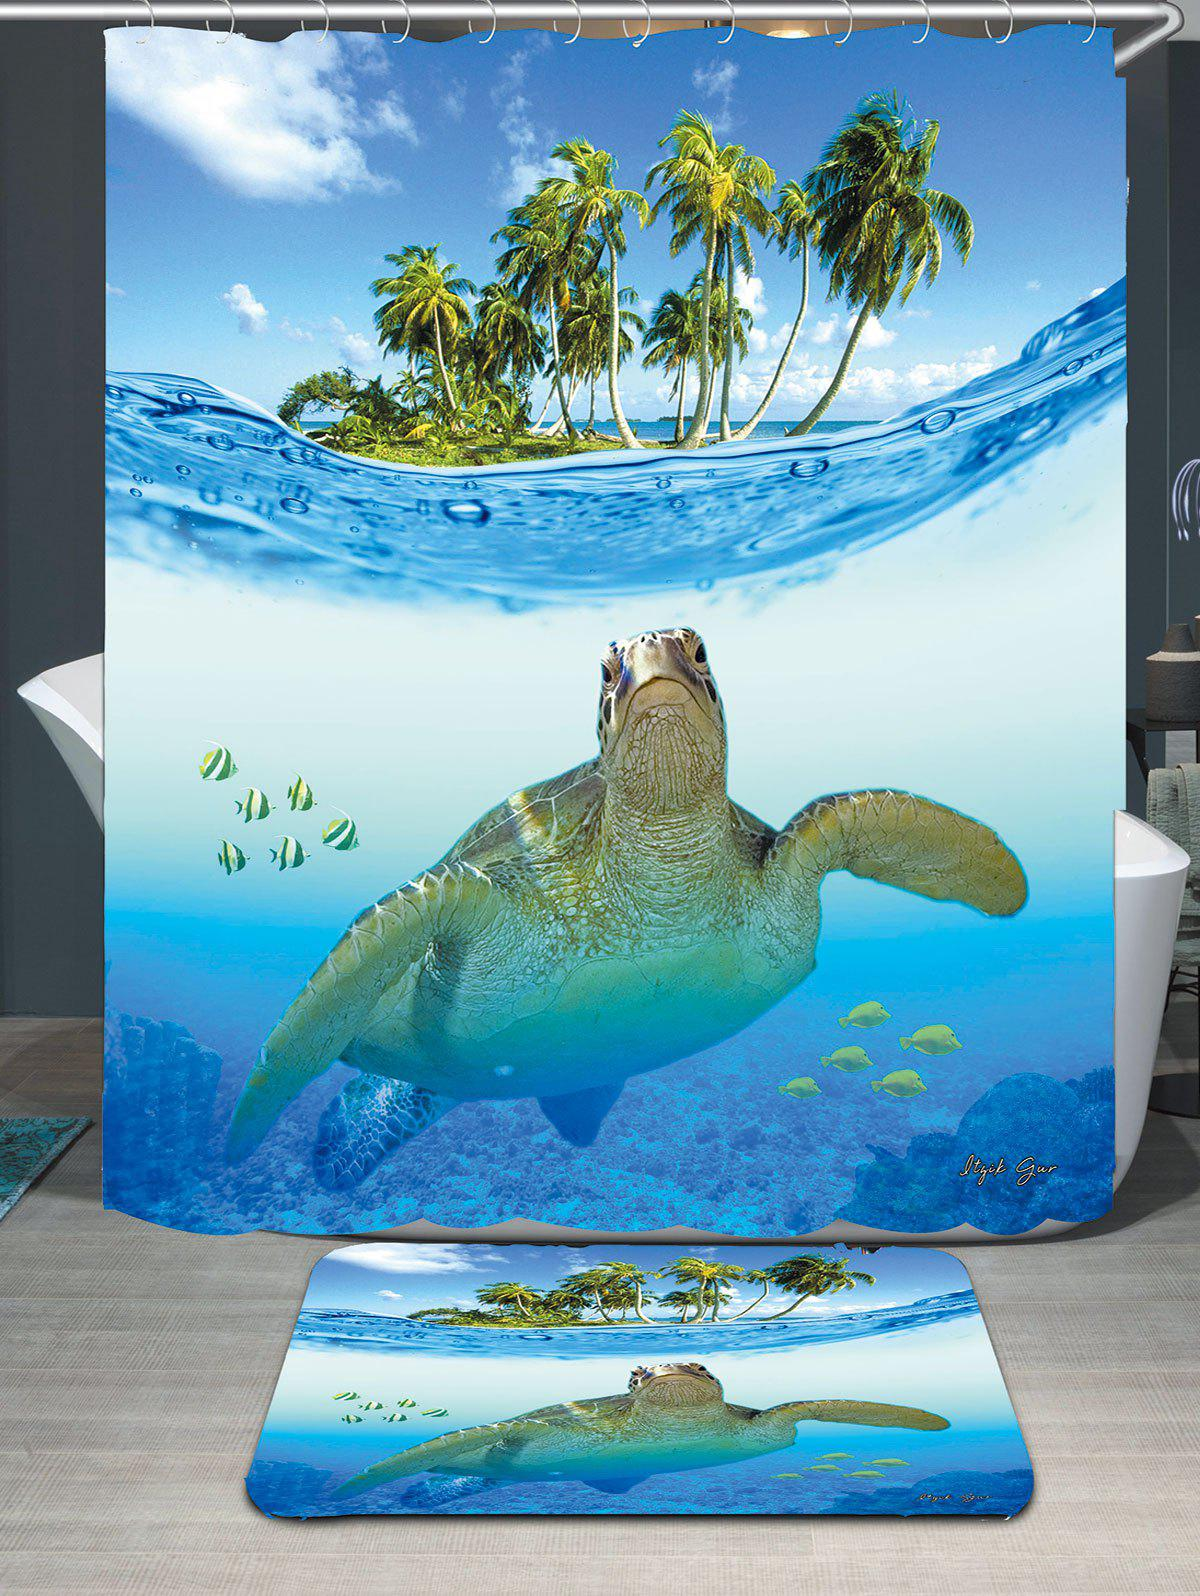 Sea Turtle Waterproof Shower Curtain Carpet SetHOME<br><br>Size: W79 INCH * L71 INCH; Color: BLUE; Products Type: Shower Curtains; Materials: Coral FLeece,Polyester; Pattern: Animal; Style: Fashion; Size: 200 x 180 + 40 x 60 ( CM ); Number of Hook Holes: 12; Package Contents: 1 x Shower Curtain 1 x Rug 1 x Hooks (Set);